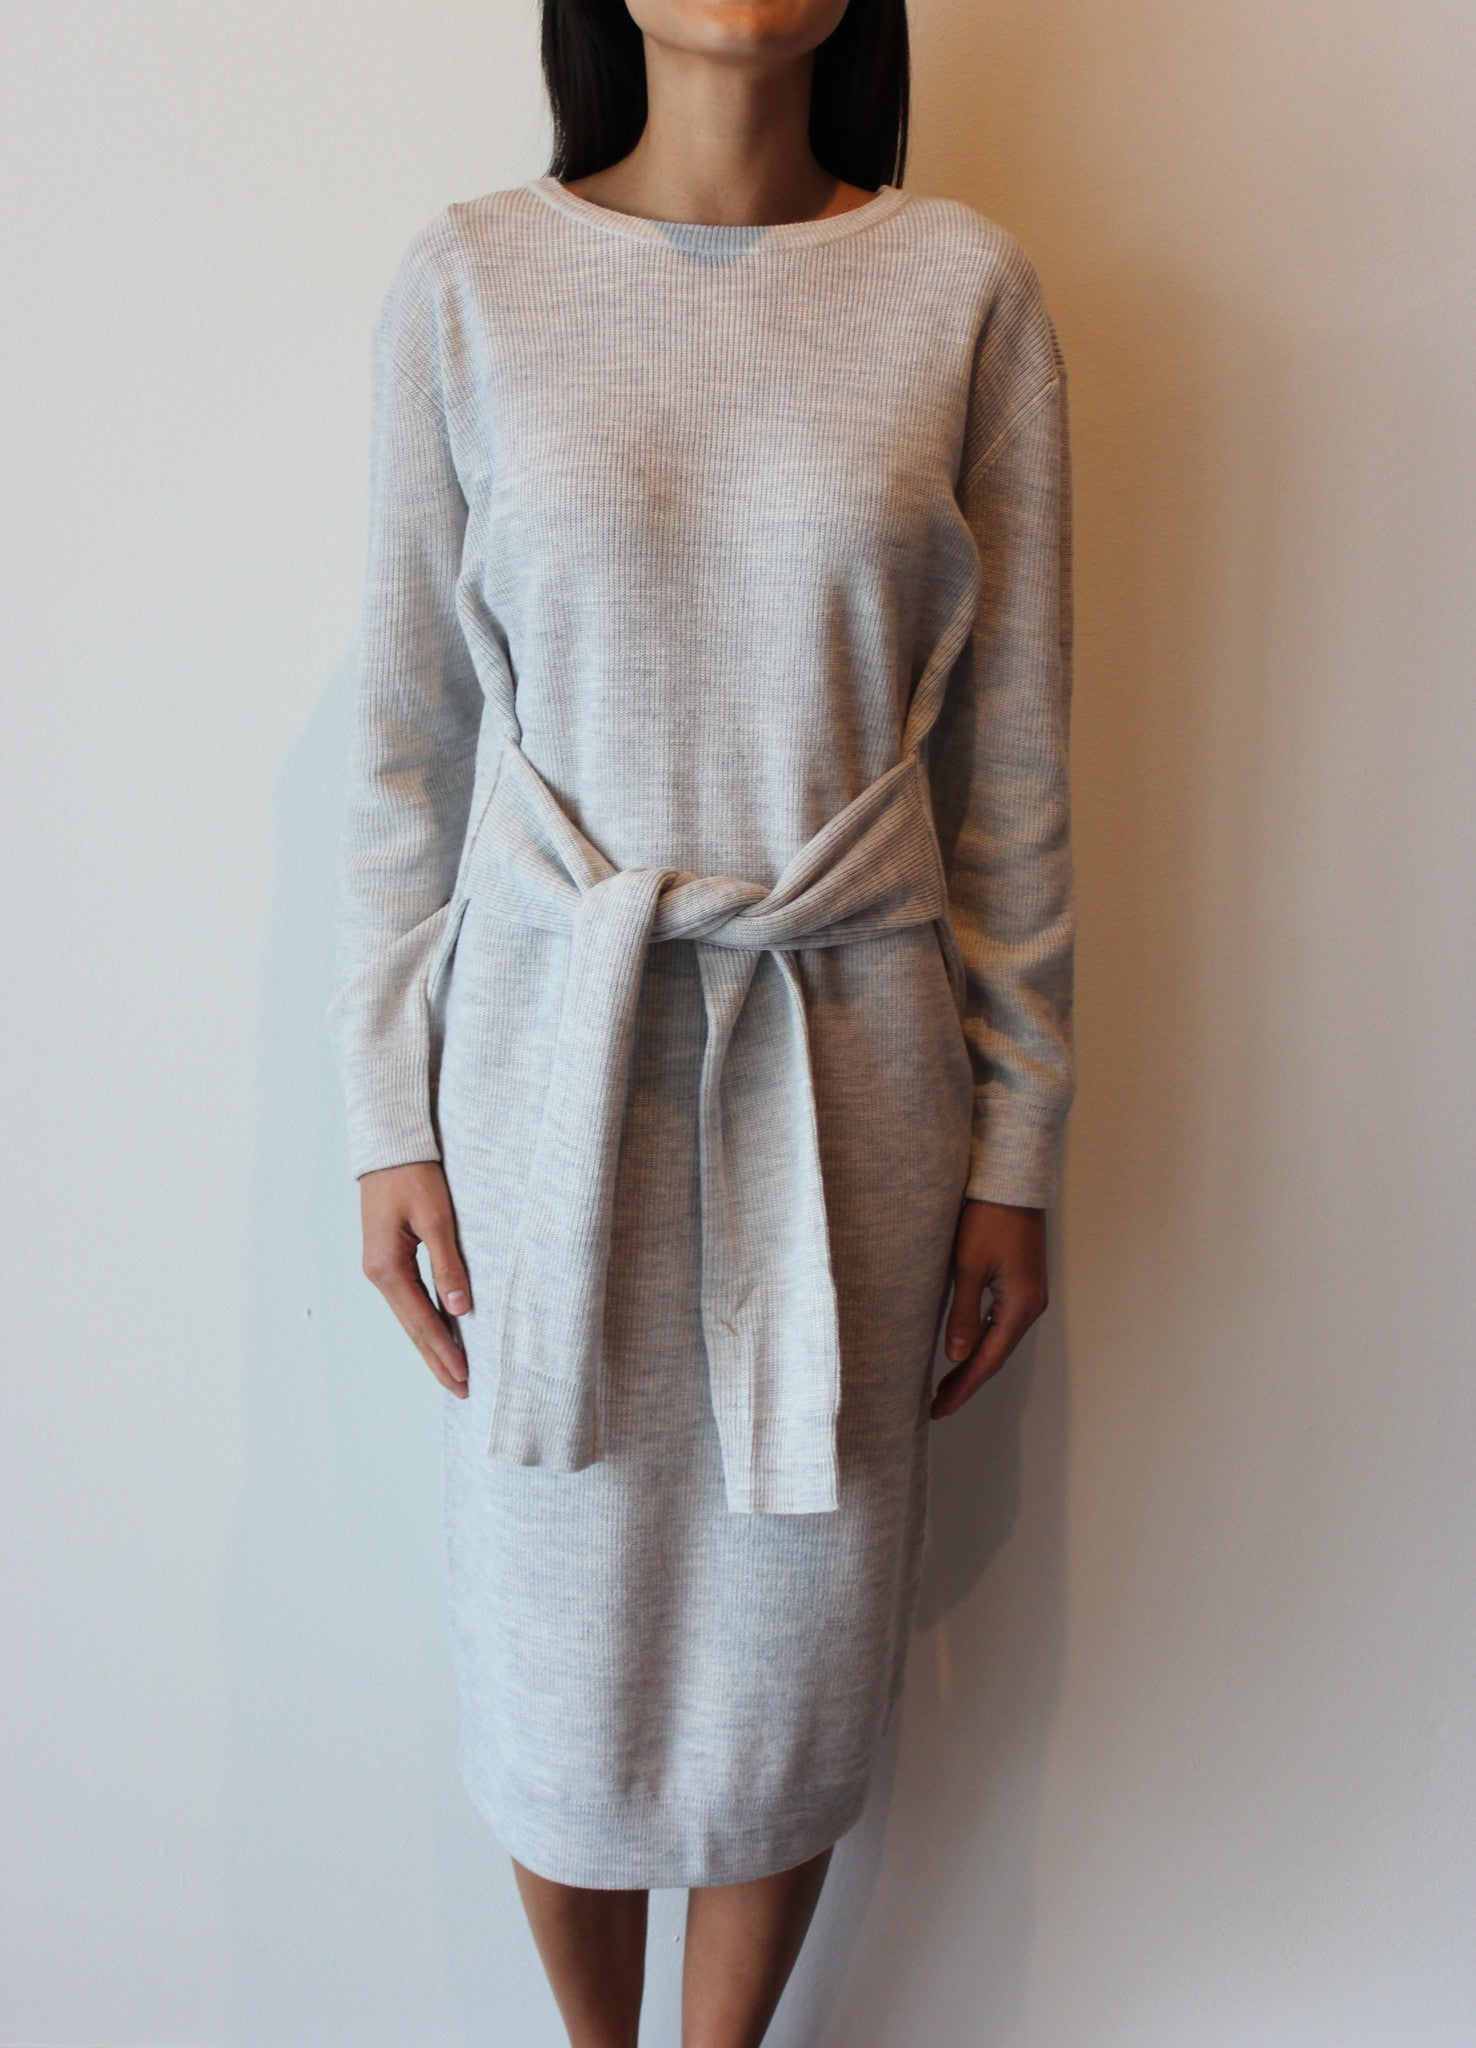 Grey Tie Knit Dress